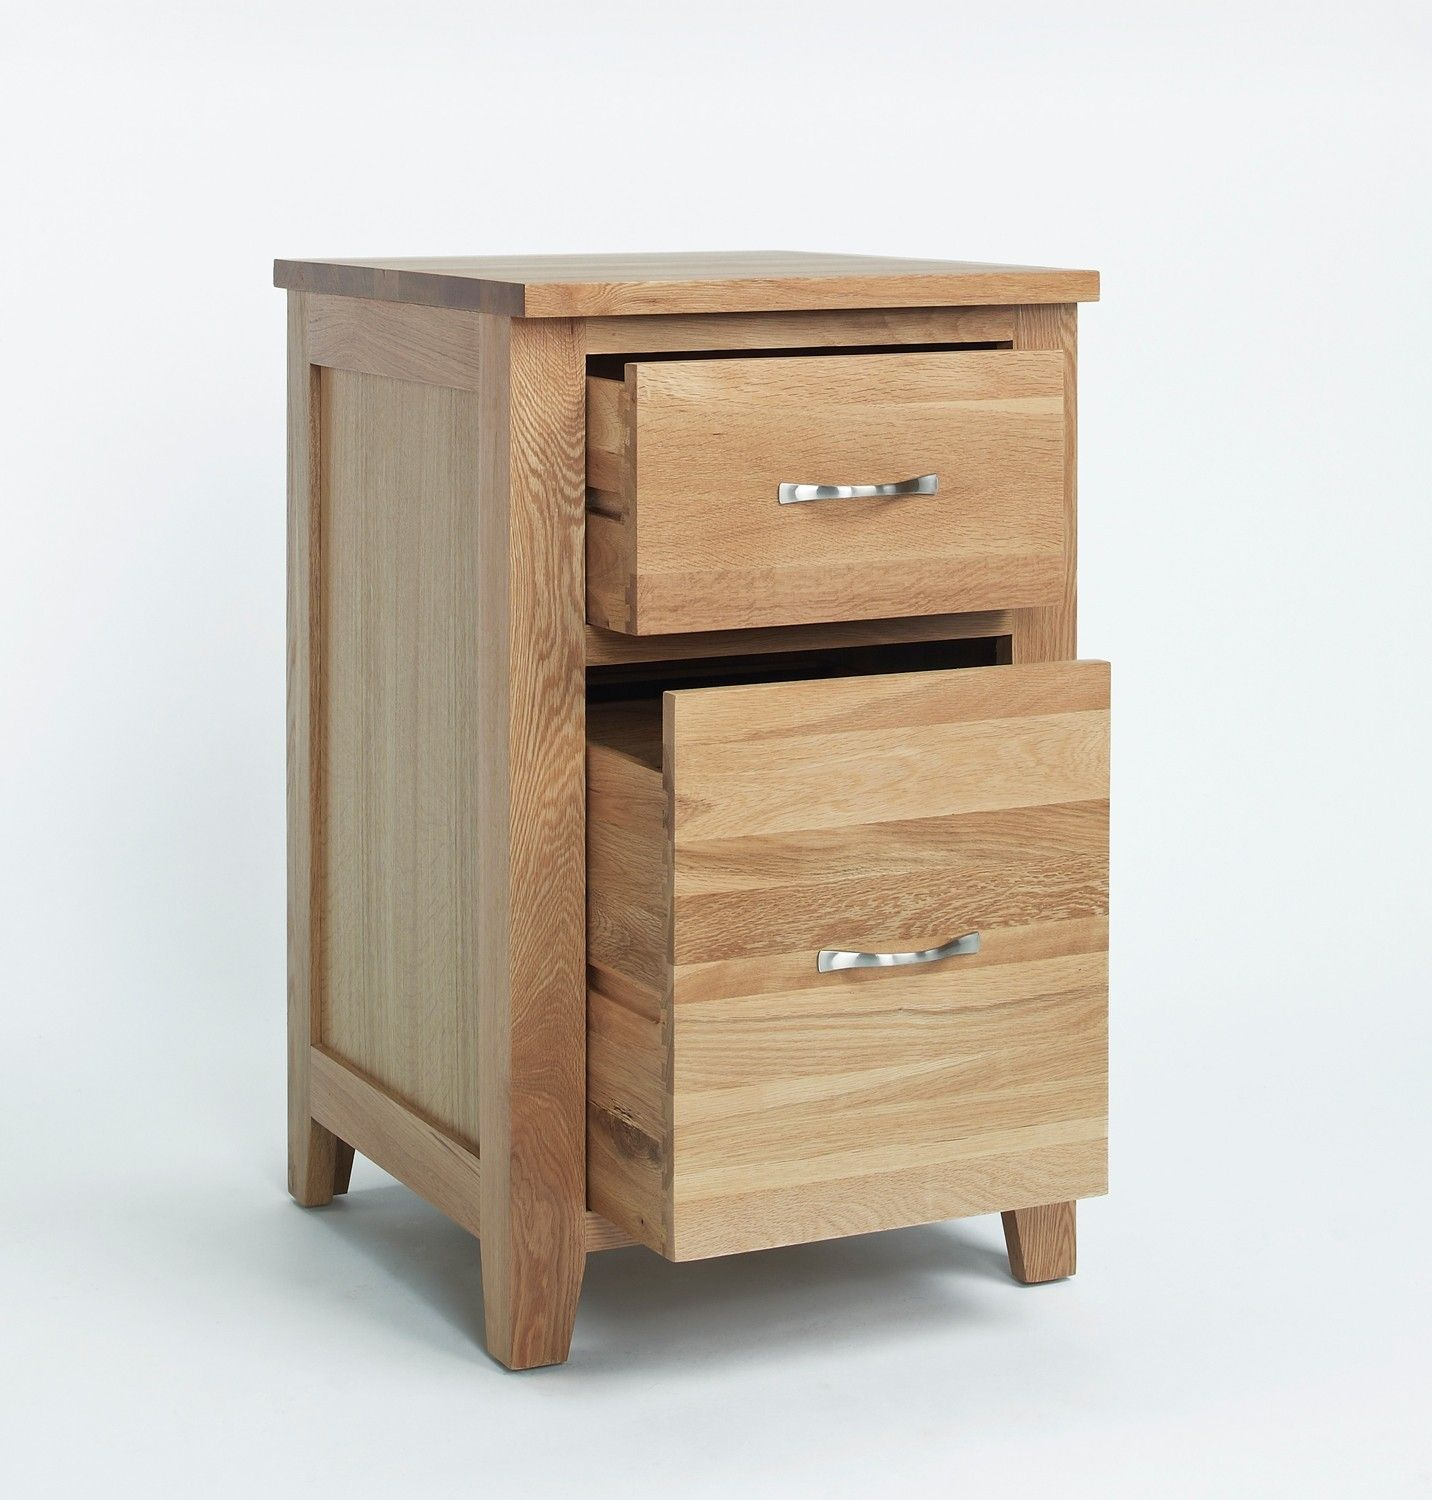 Sherwood Oak Filing Cabinet 2 Drawer Is Made Of A High Quality Grade Of Oak Which Exhibits All The Ha Filing Cabinet Drawer Filing Cabinet Oak Display Cabinet